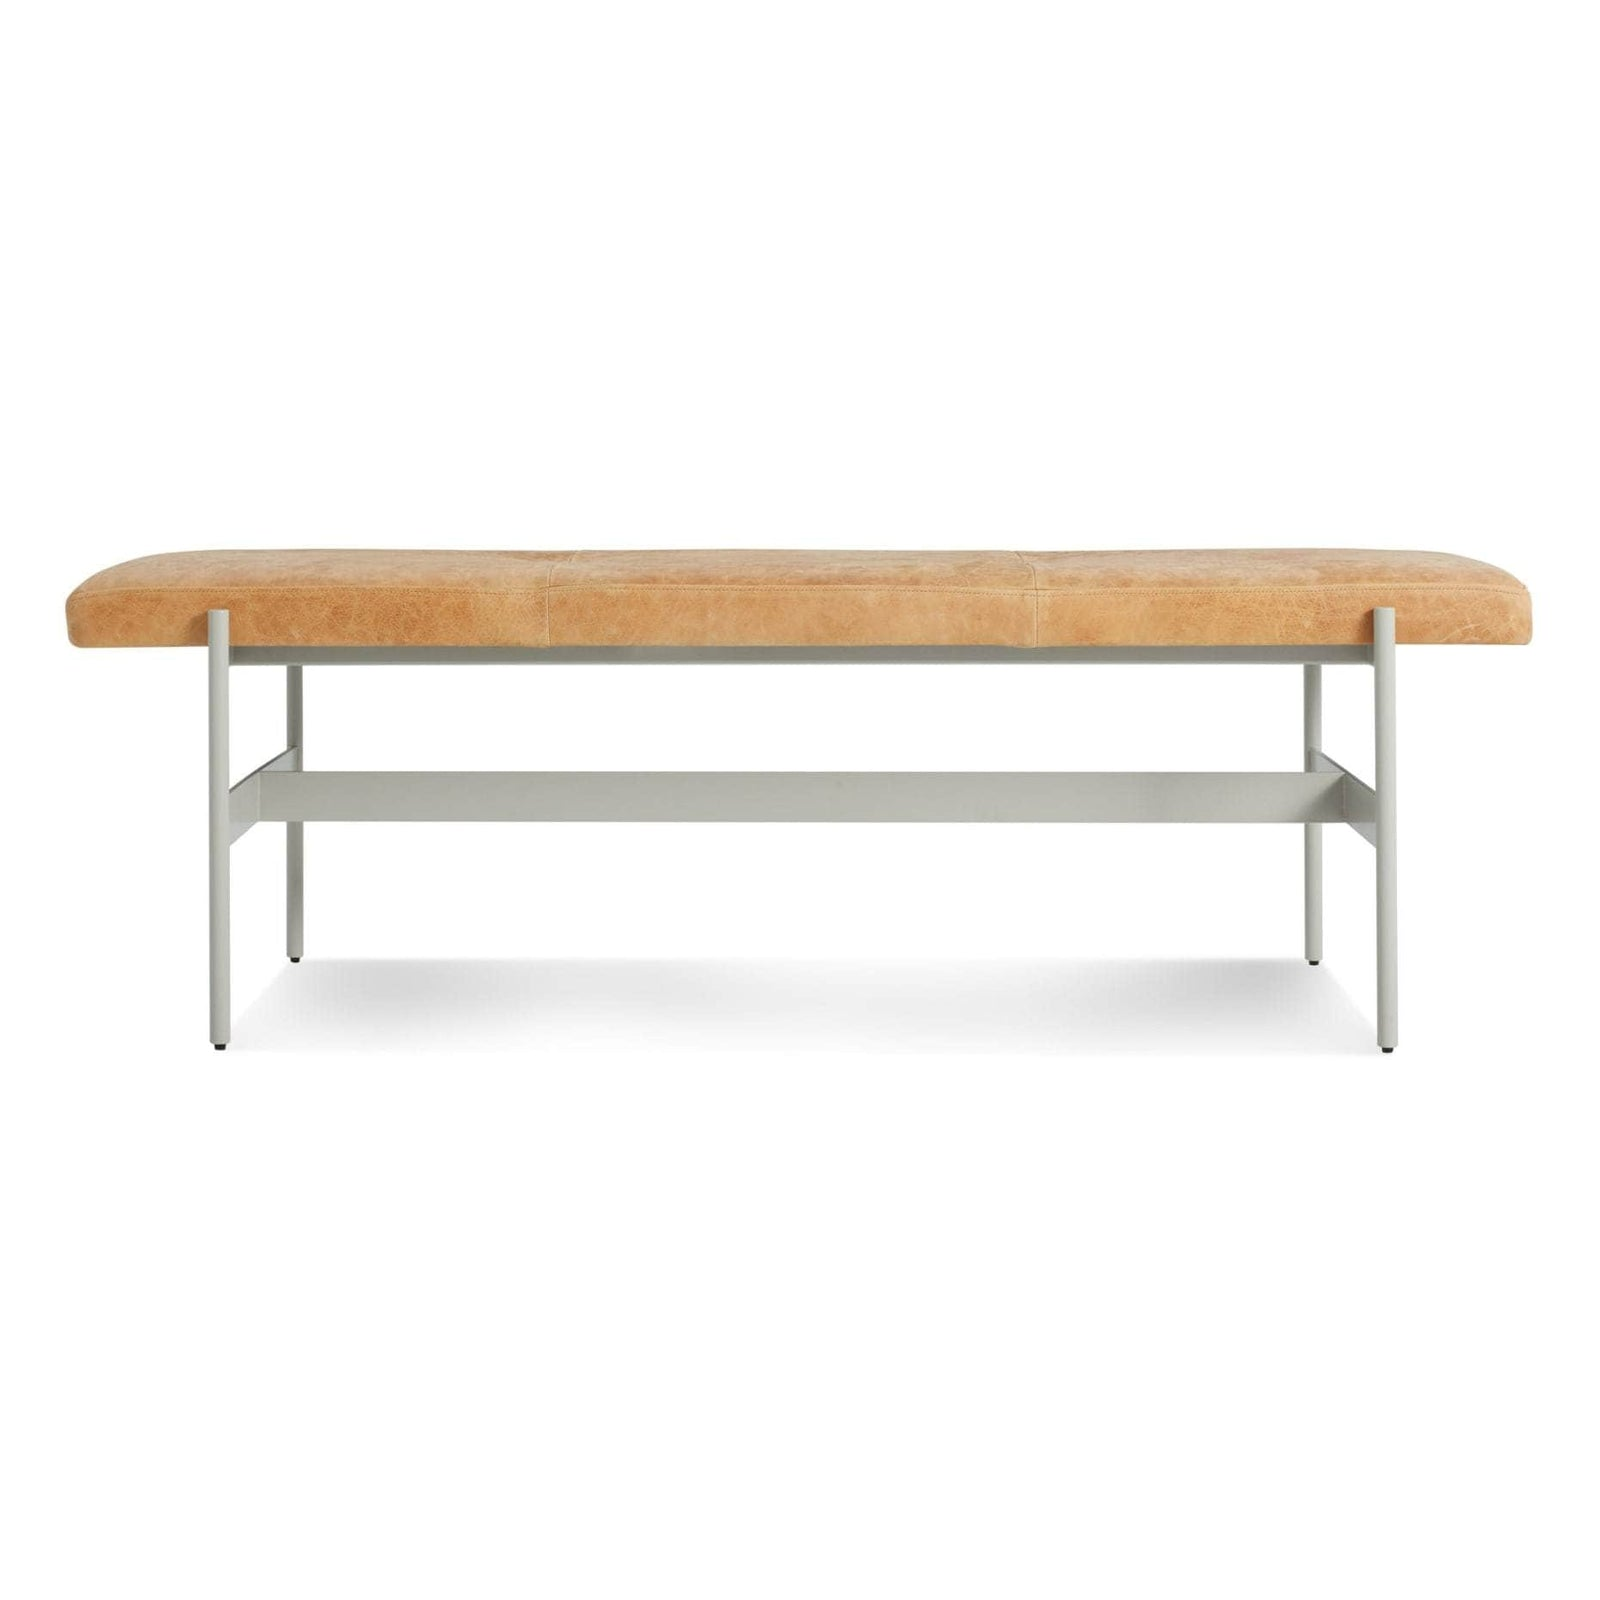 "Blu Dot Furniture 55"" / Camel Leather / Putty Daybench"